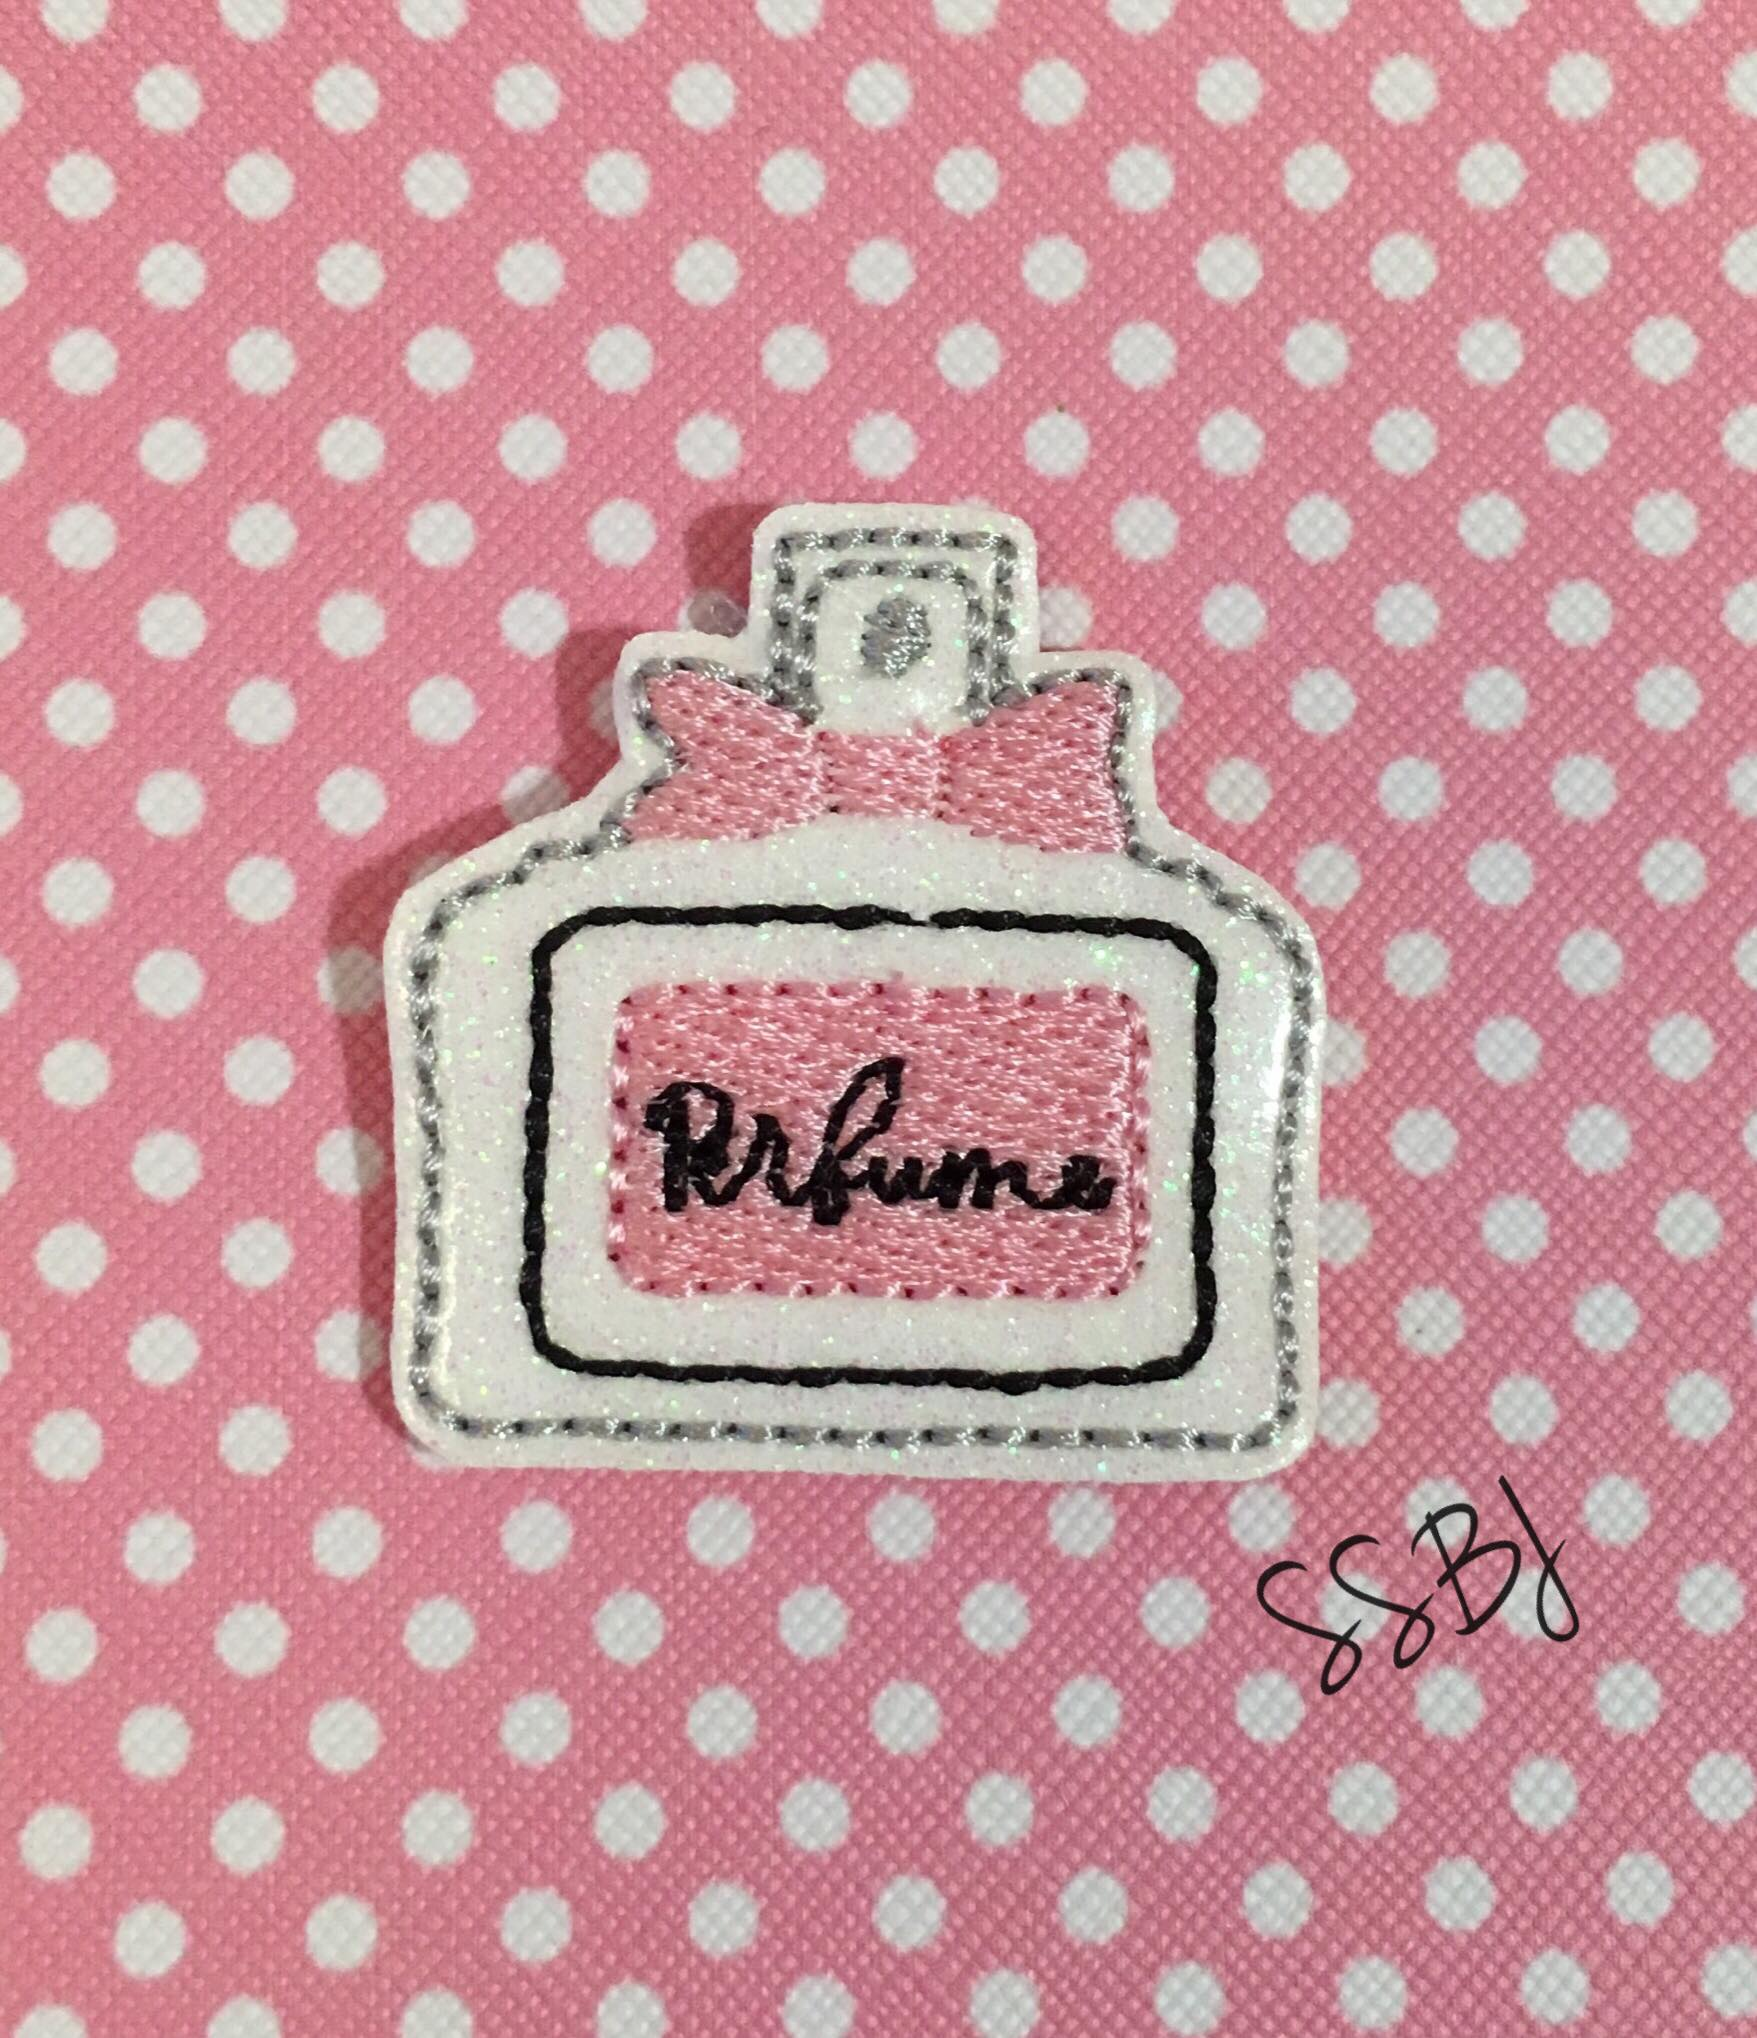 SSBJ Perfume Bottle Embroidery File